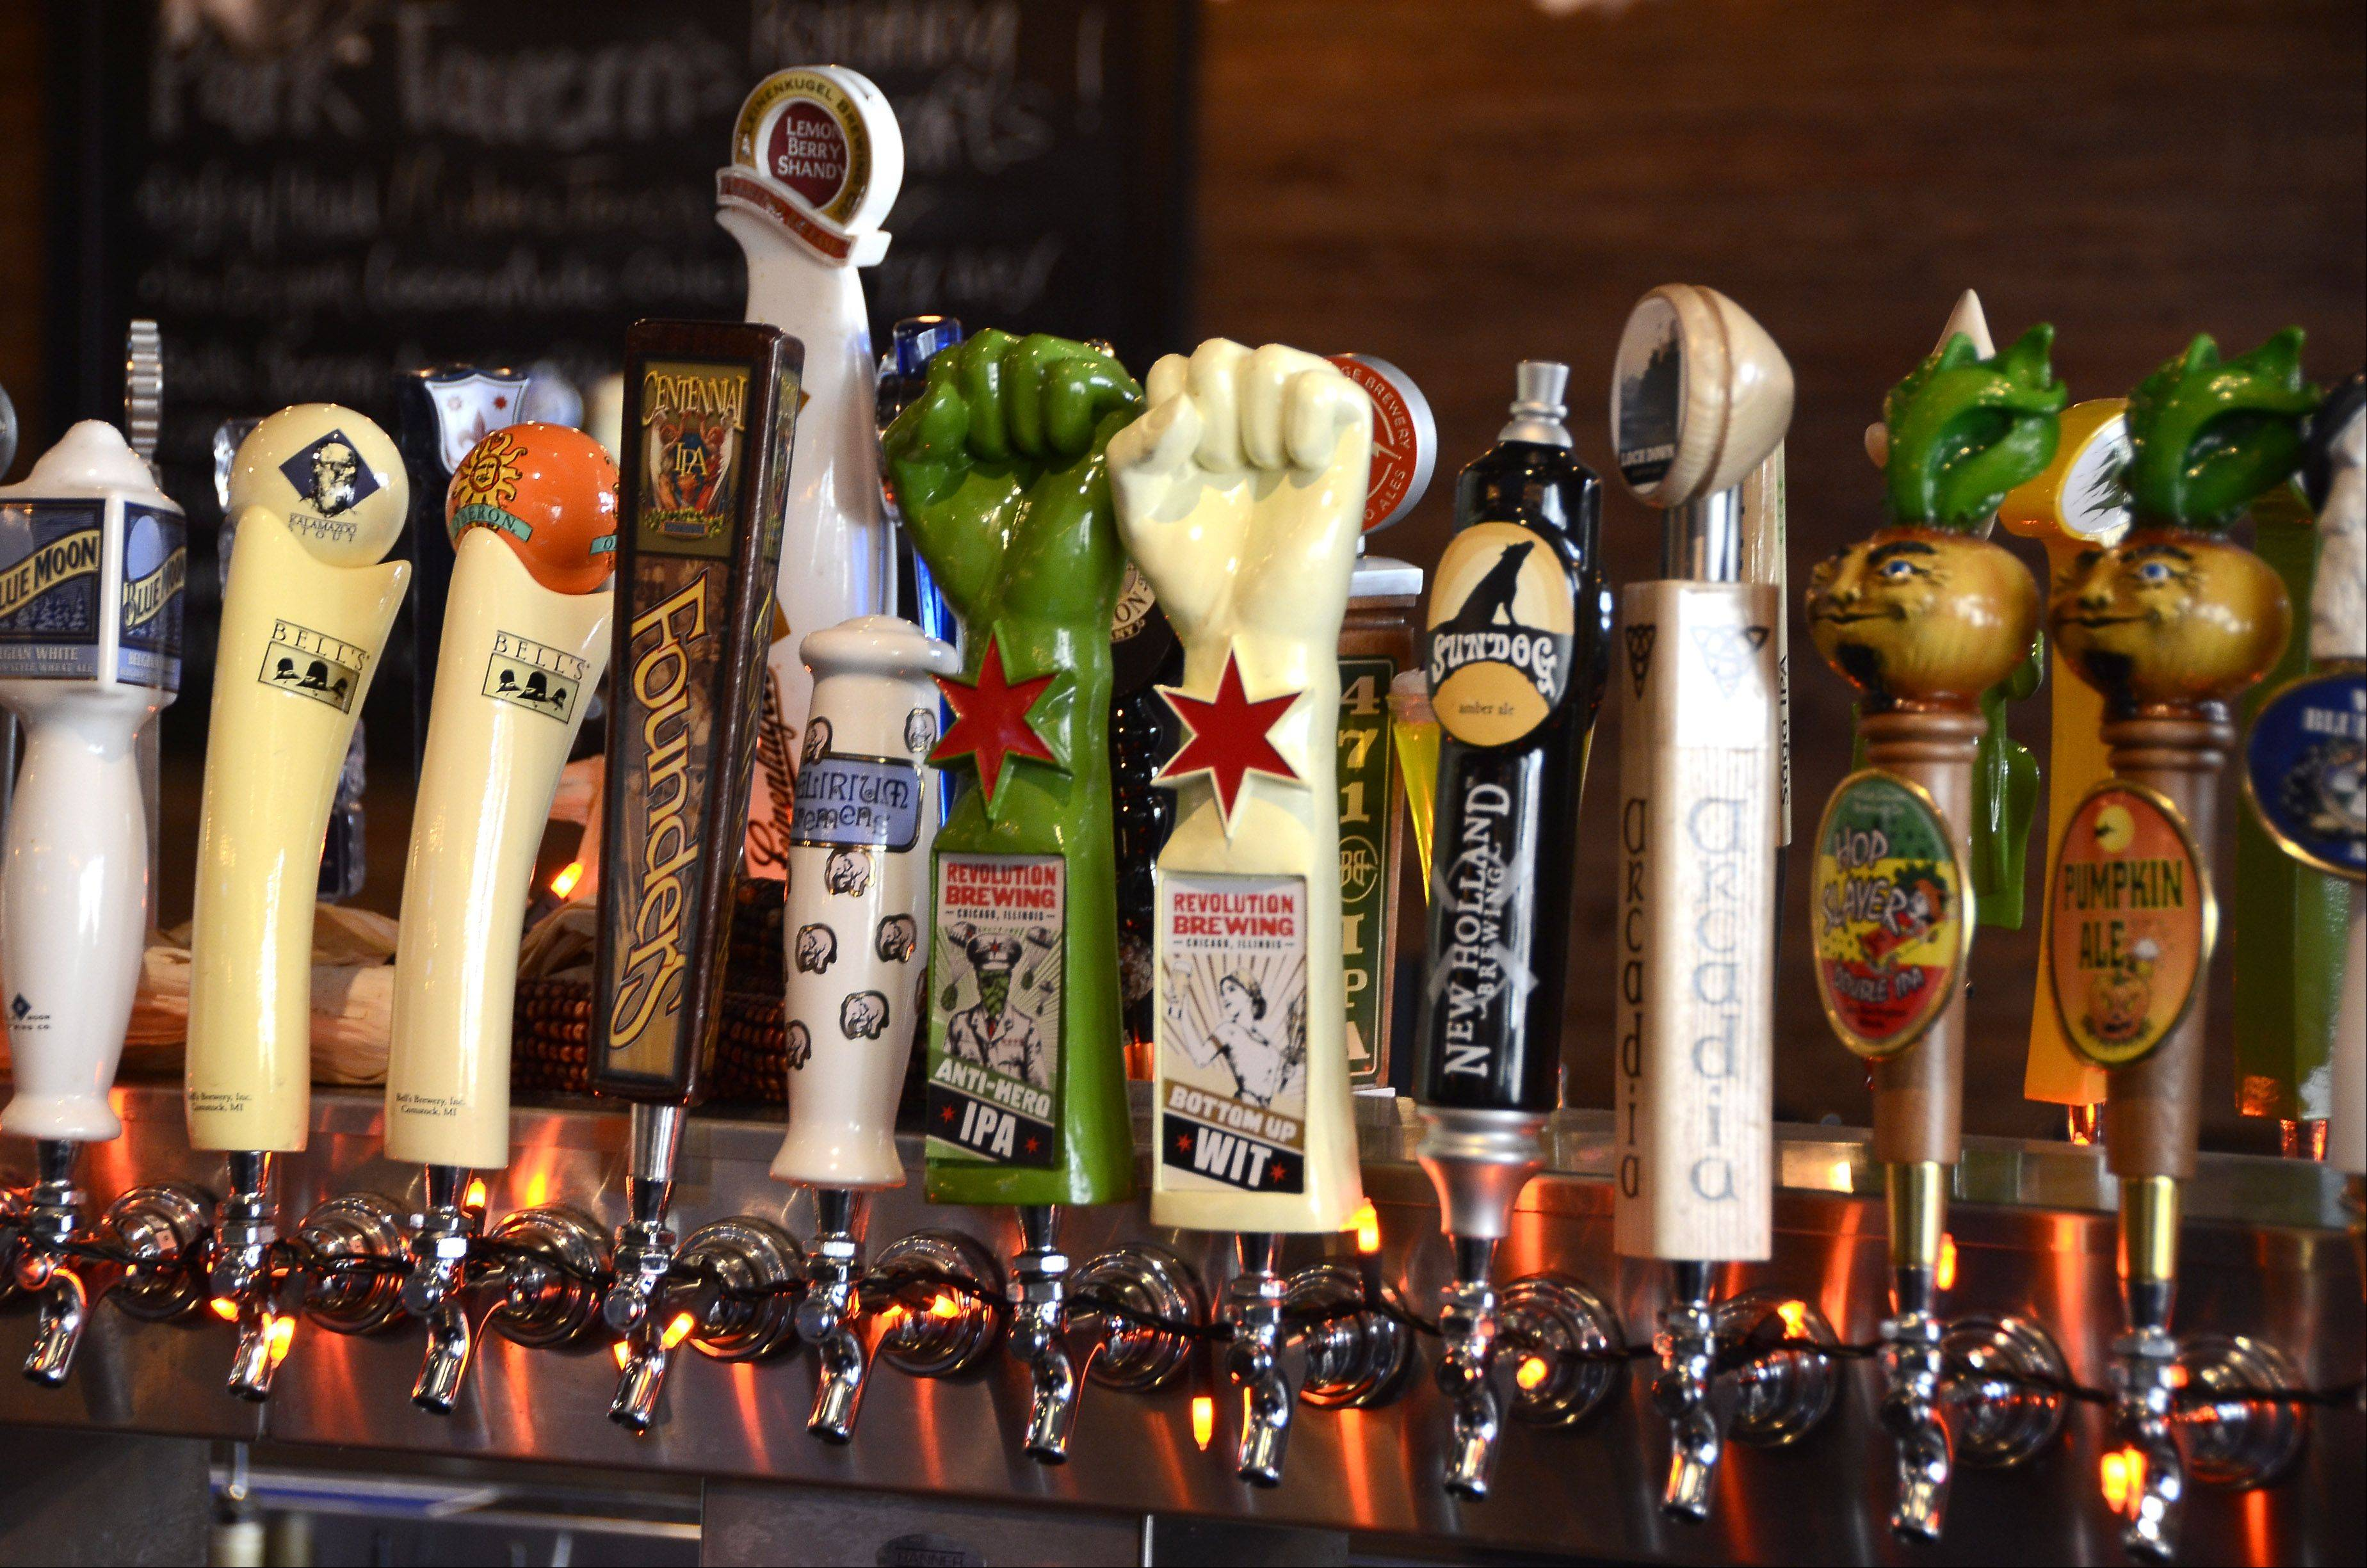 A seemingly endless variety of beers are on tap at Park Tavern in Rosemont.